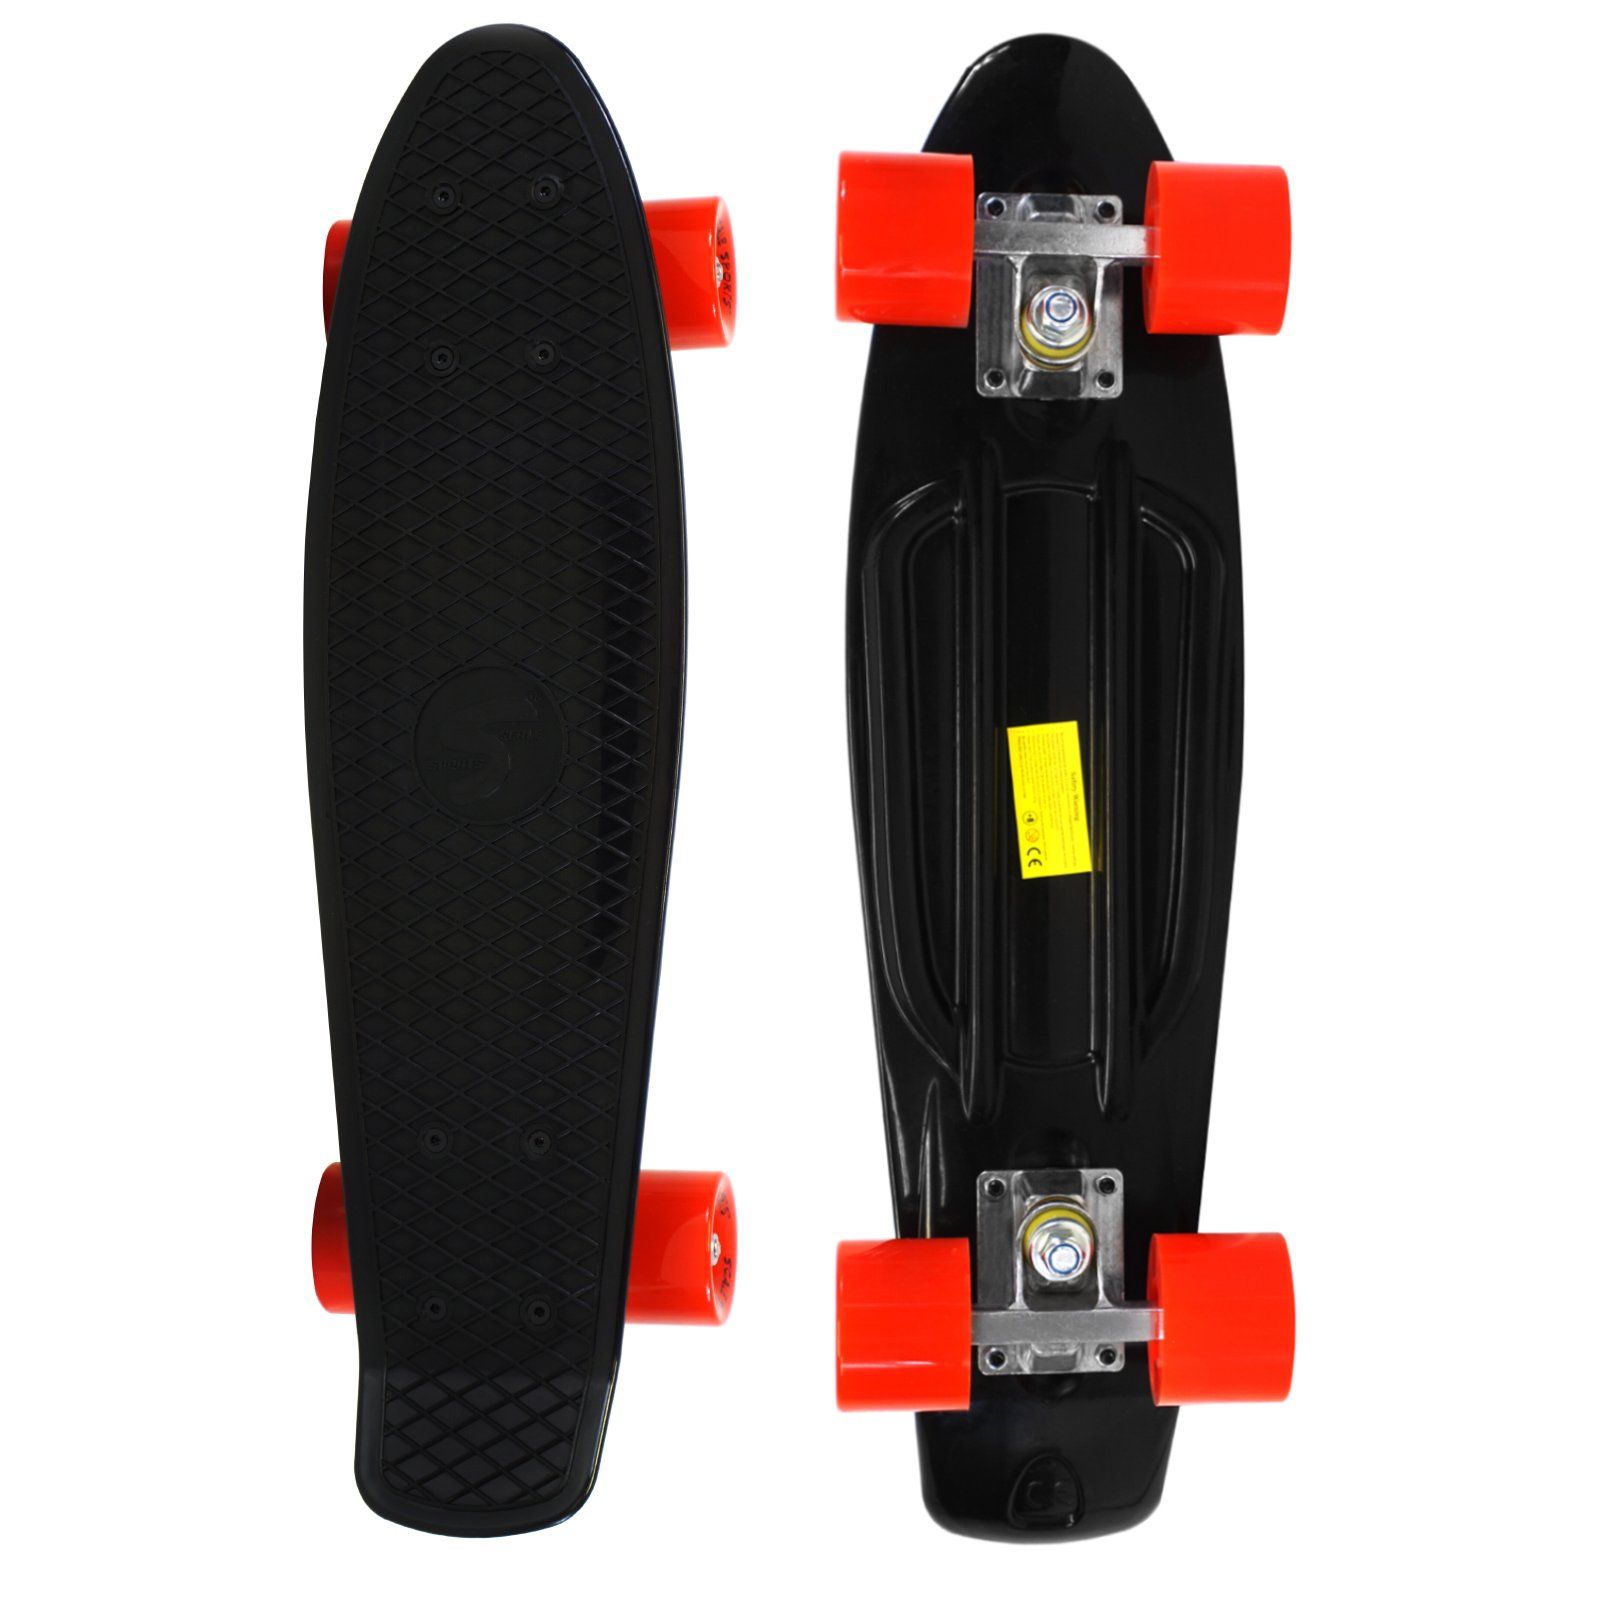 Scale Sports 22'' Skateboard Complete Pastel Street Retro Cruiser Classic Plastic Deck Black Red